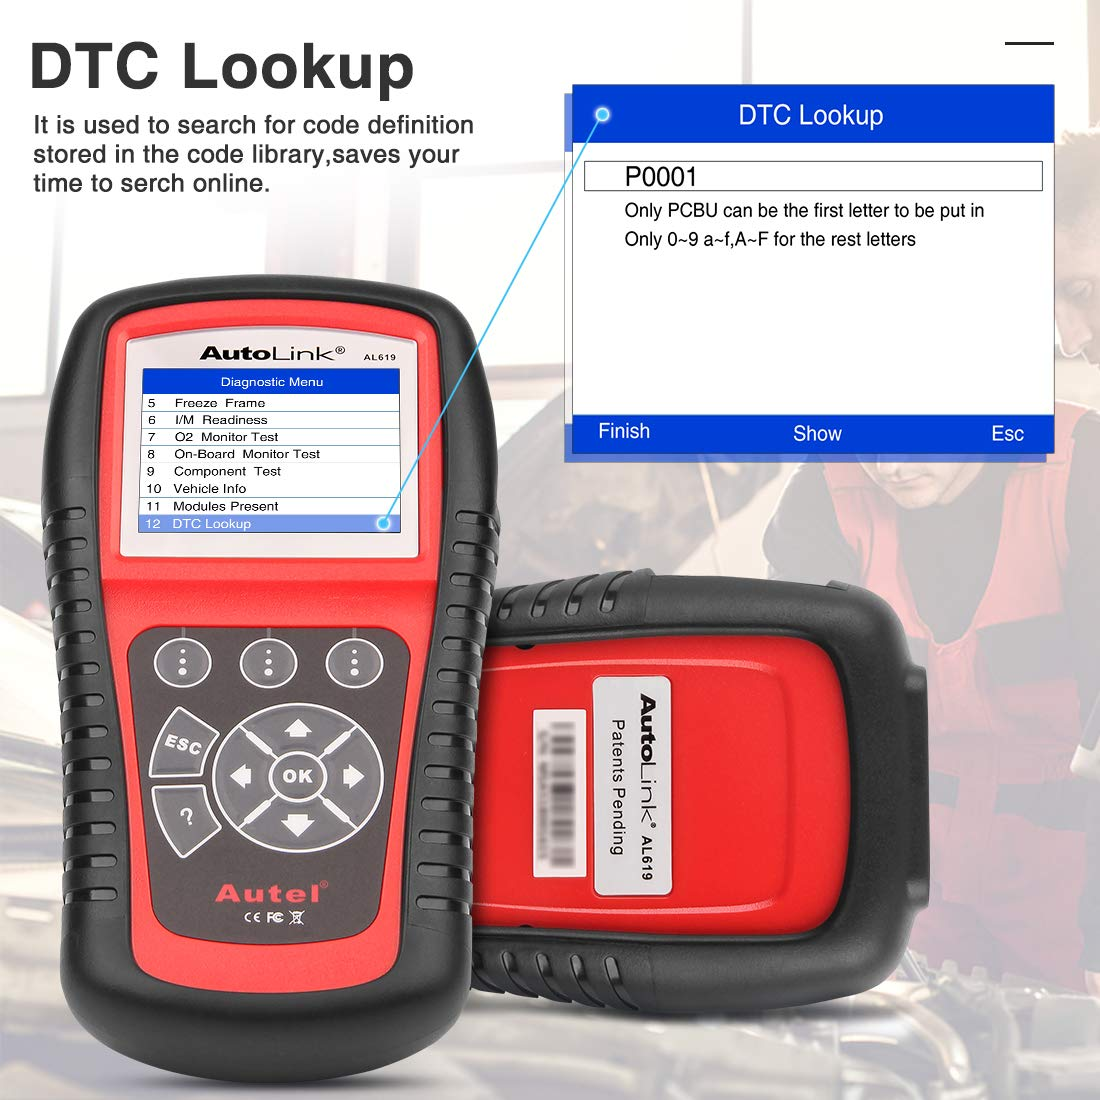 Autel AutoLink AL619 OBD2 Scanner ABS/SRS Diagnostic Scan Tool,Turns Off Engine Light (MIL) and ABS/SRS Warning Lights,Same Function as The ML619 Code Reader by Autel (Image #5)